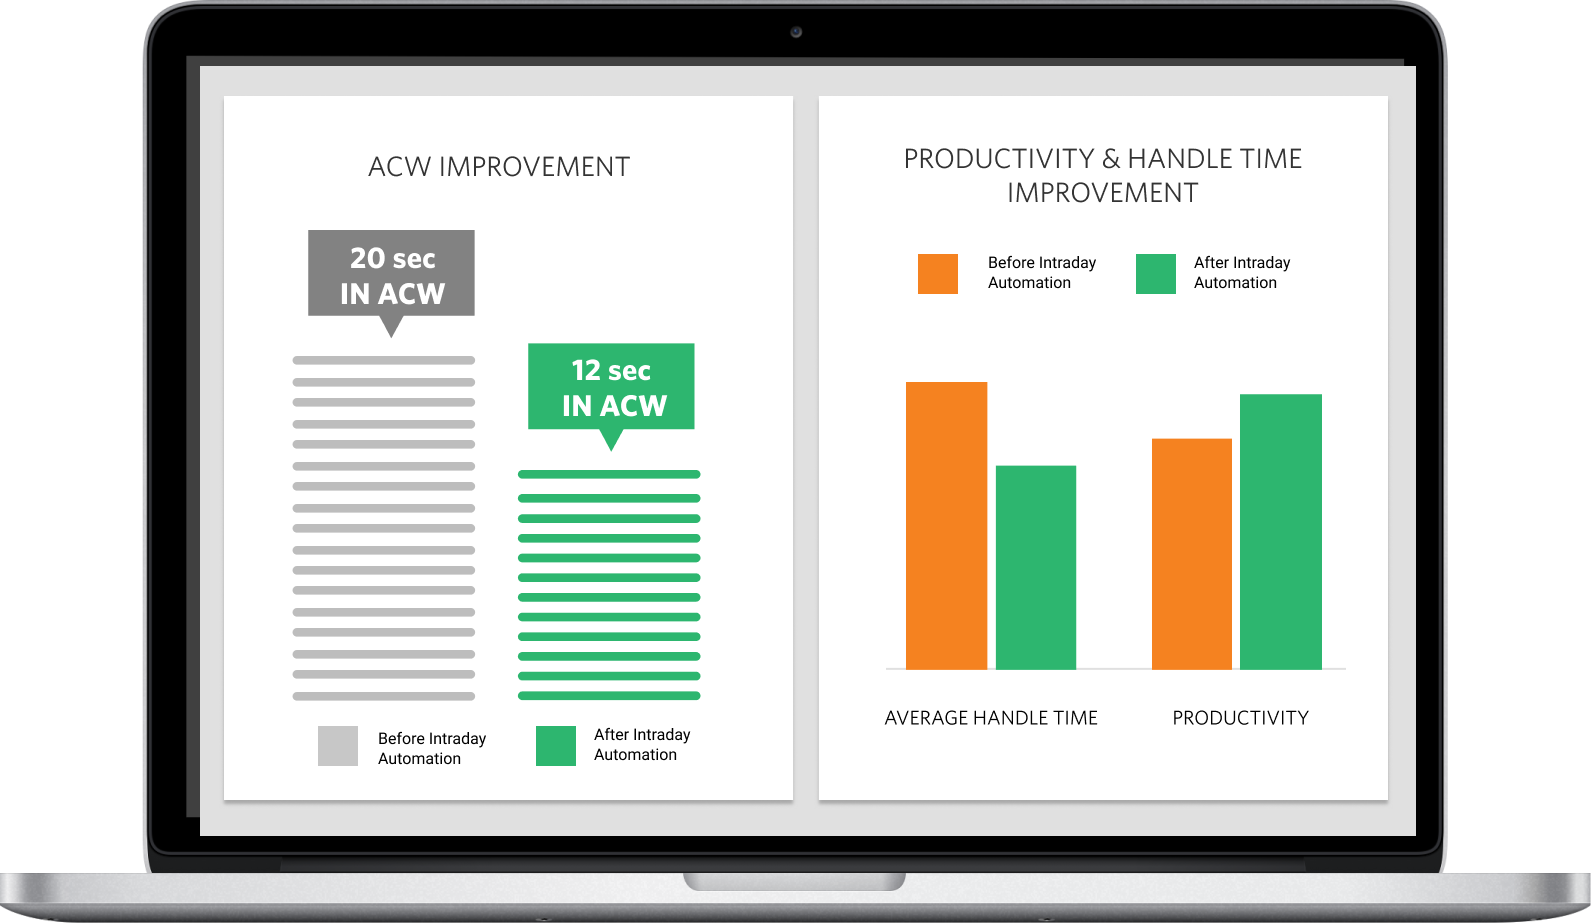 ACW, Productivity, and Handle time improvement bar graoh